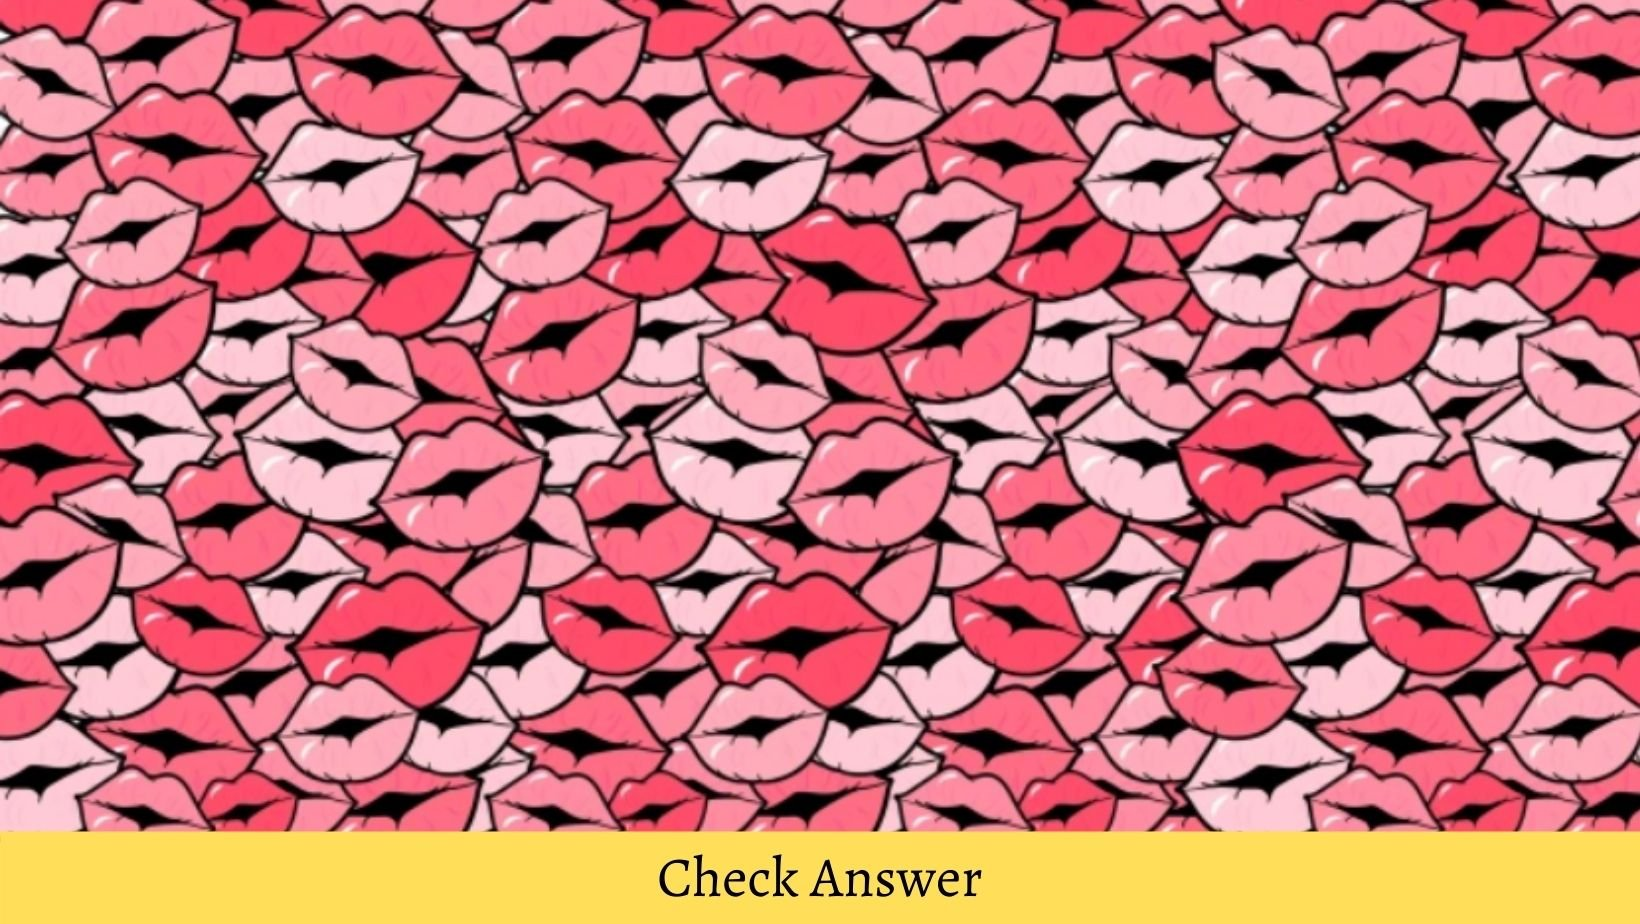 small joys thumbnail 9 1.jpg?resize=1200,630 - There's A Lipstick Hiding In This Photo, Can You Find It In Less Than A Minute?